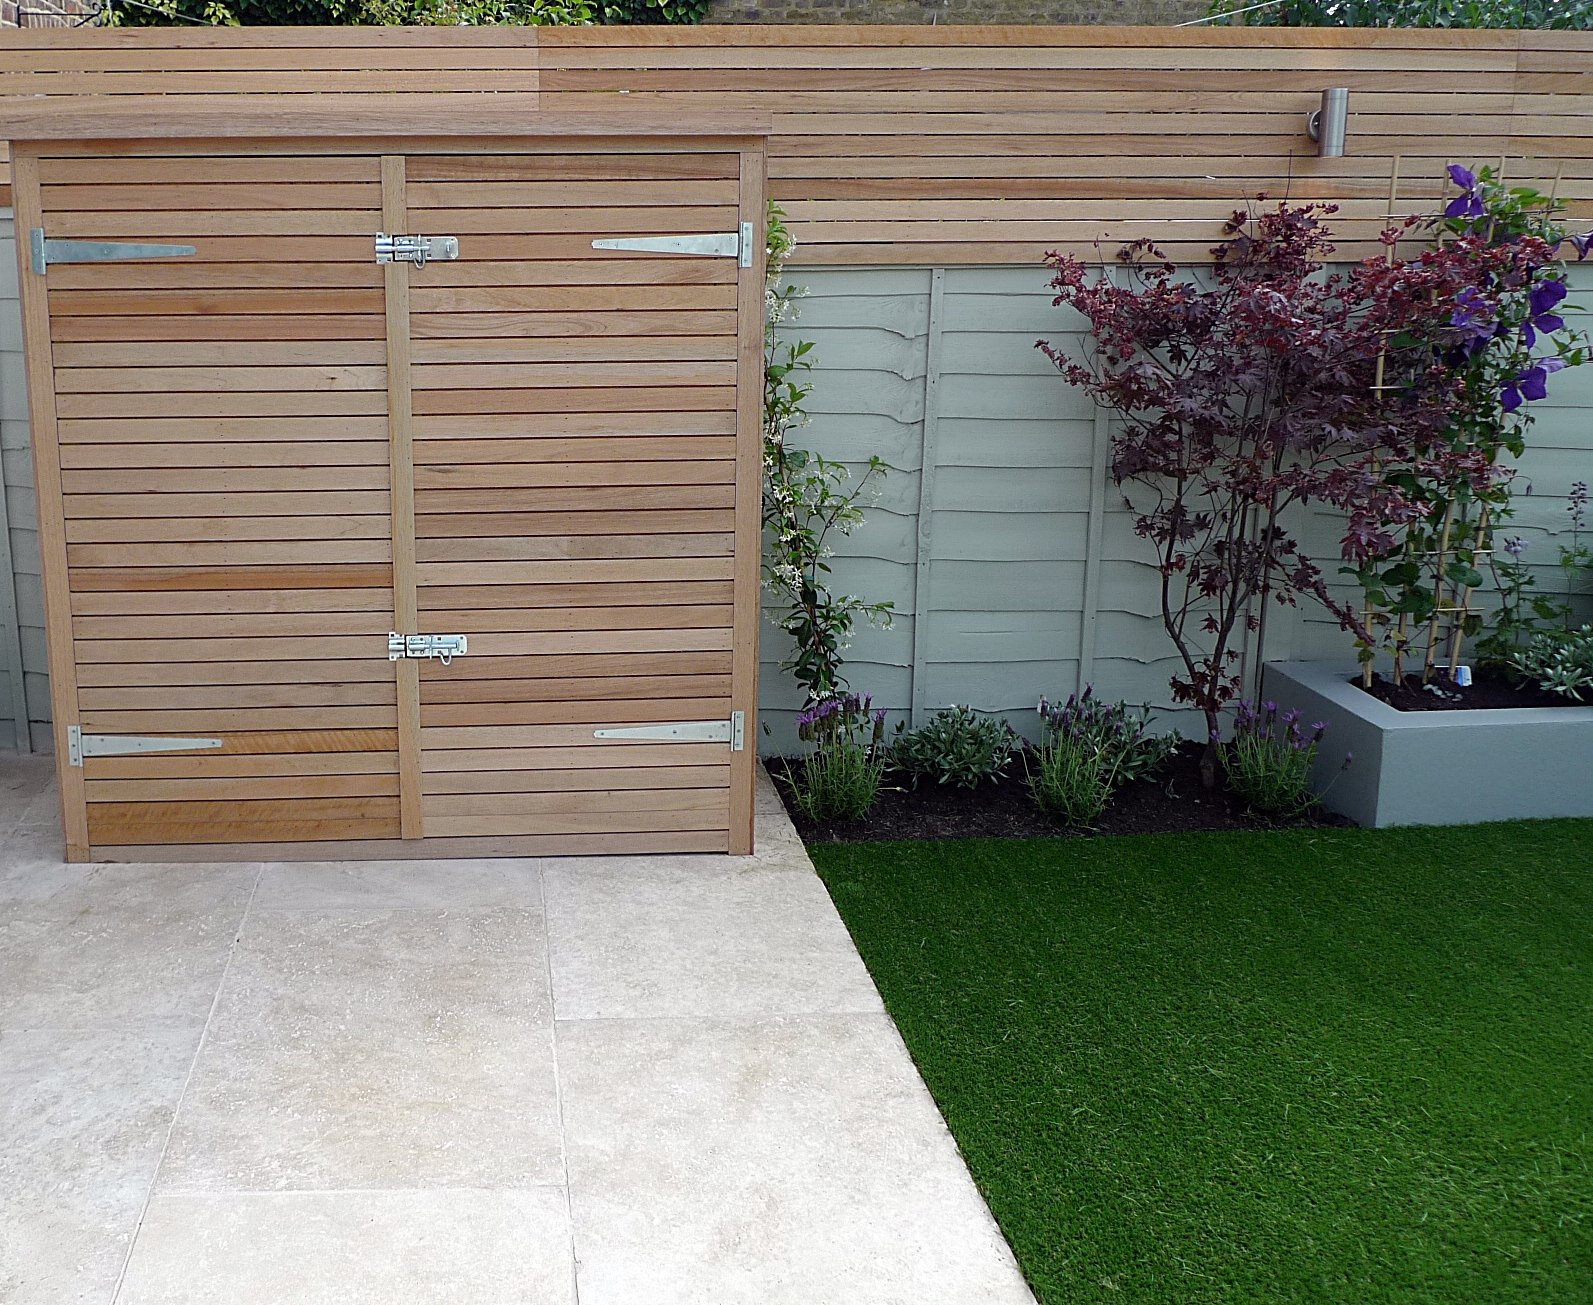 travertine cream paving bespoke storage bike shed dulwich clapham balham battersea fulham chelsea london